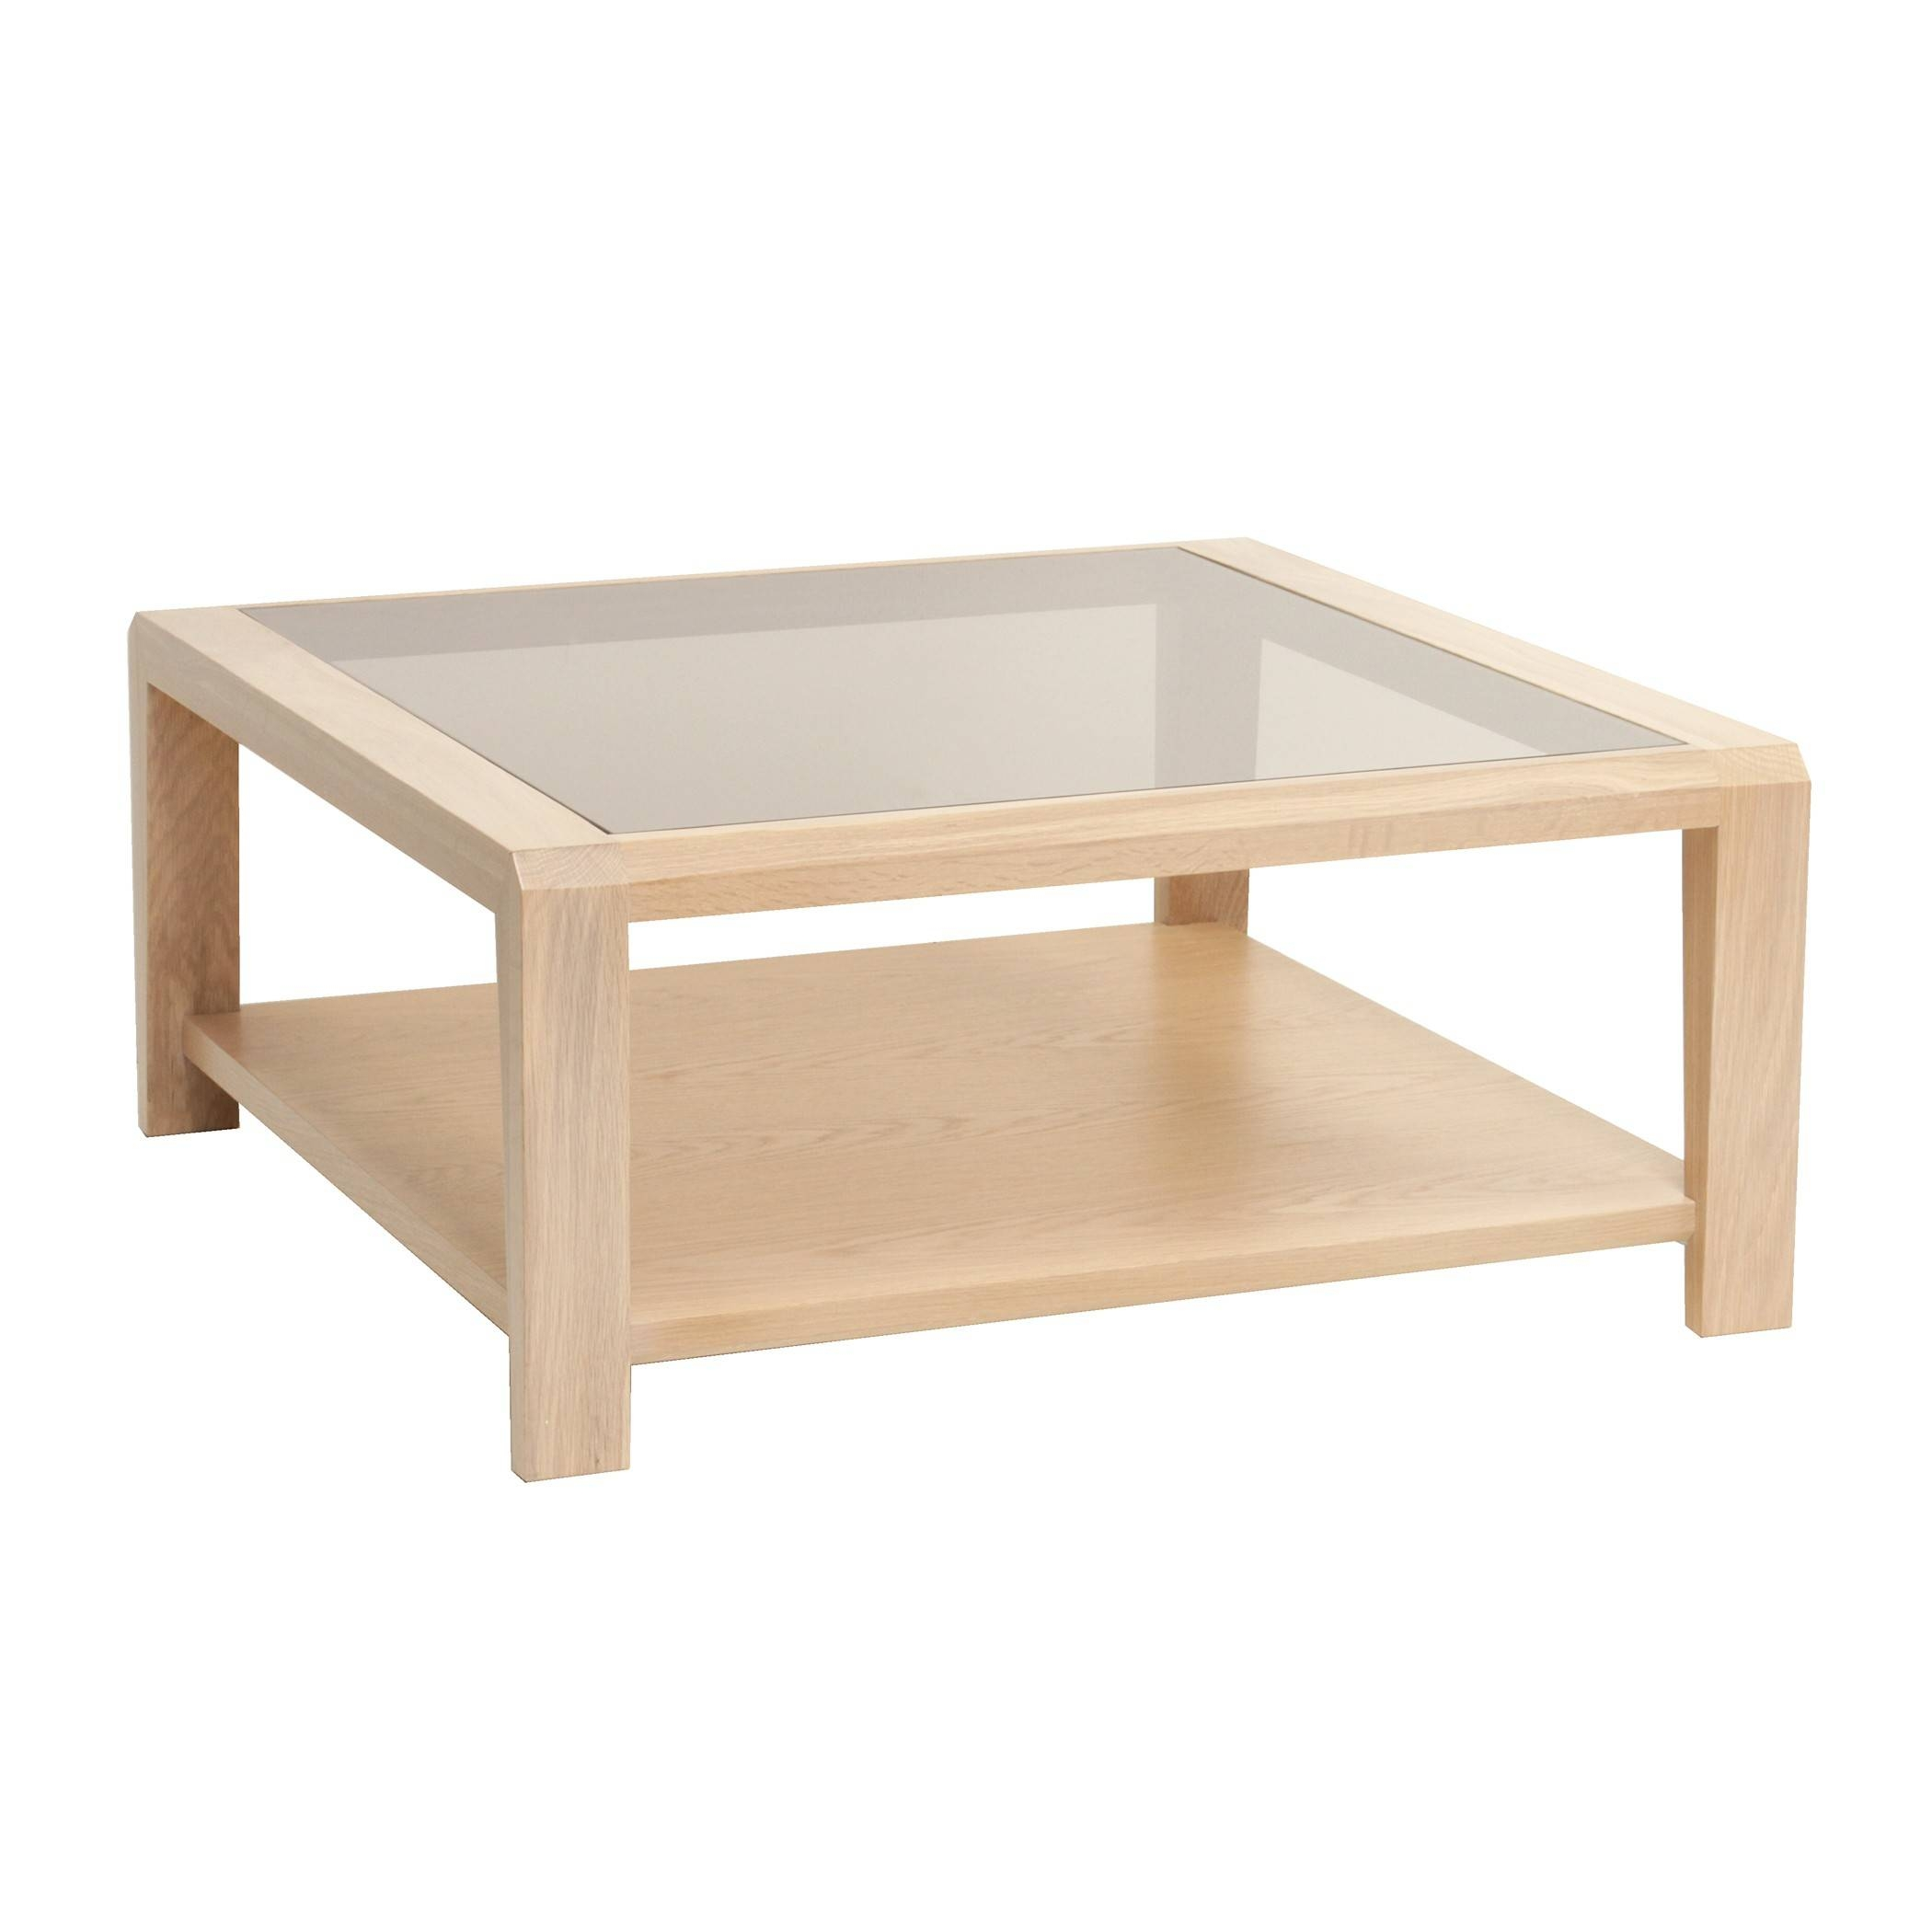 Oak Square Coffee Table With Glass Top | Gola Furniture Uk pertaining to Square Coffee Table Oak (Image 12 of 15)